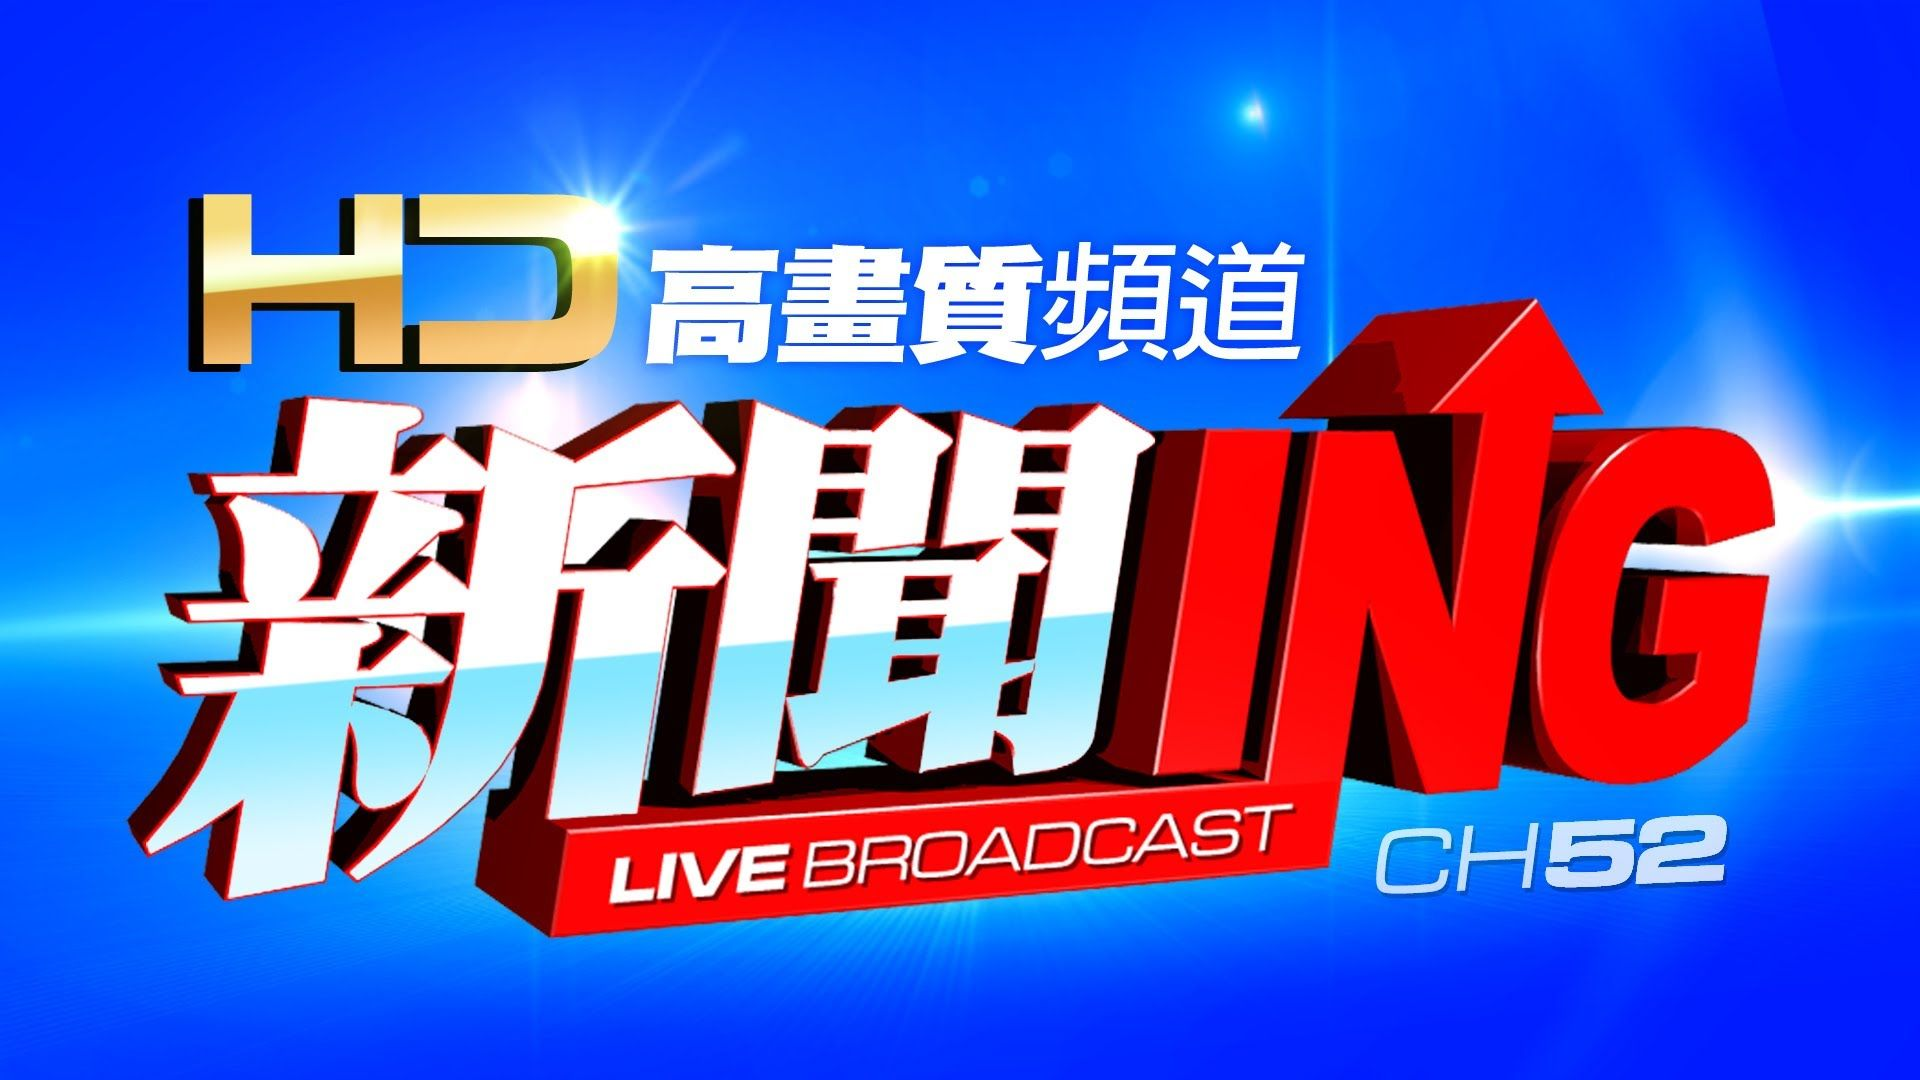 CTITV Taiwan News HD